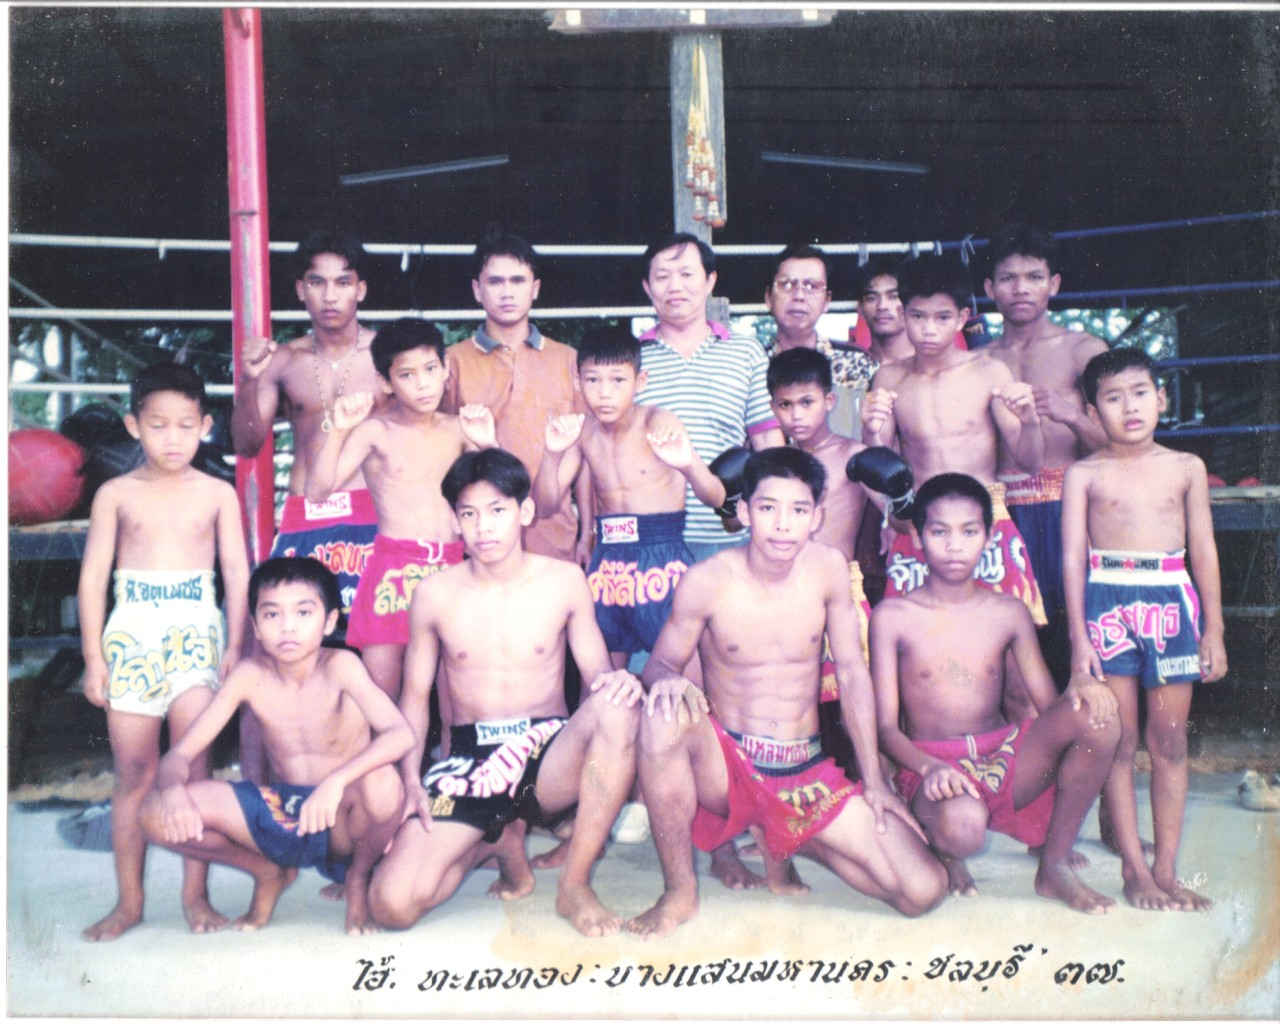 Dip (back right) fighting out of Taletong (1994)